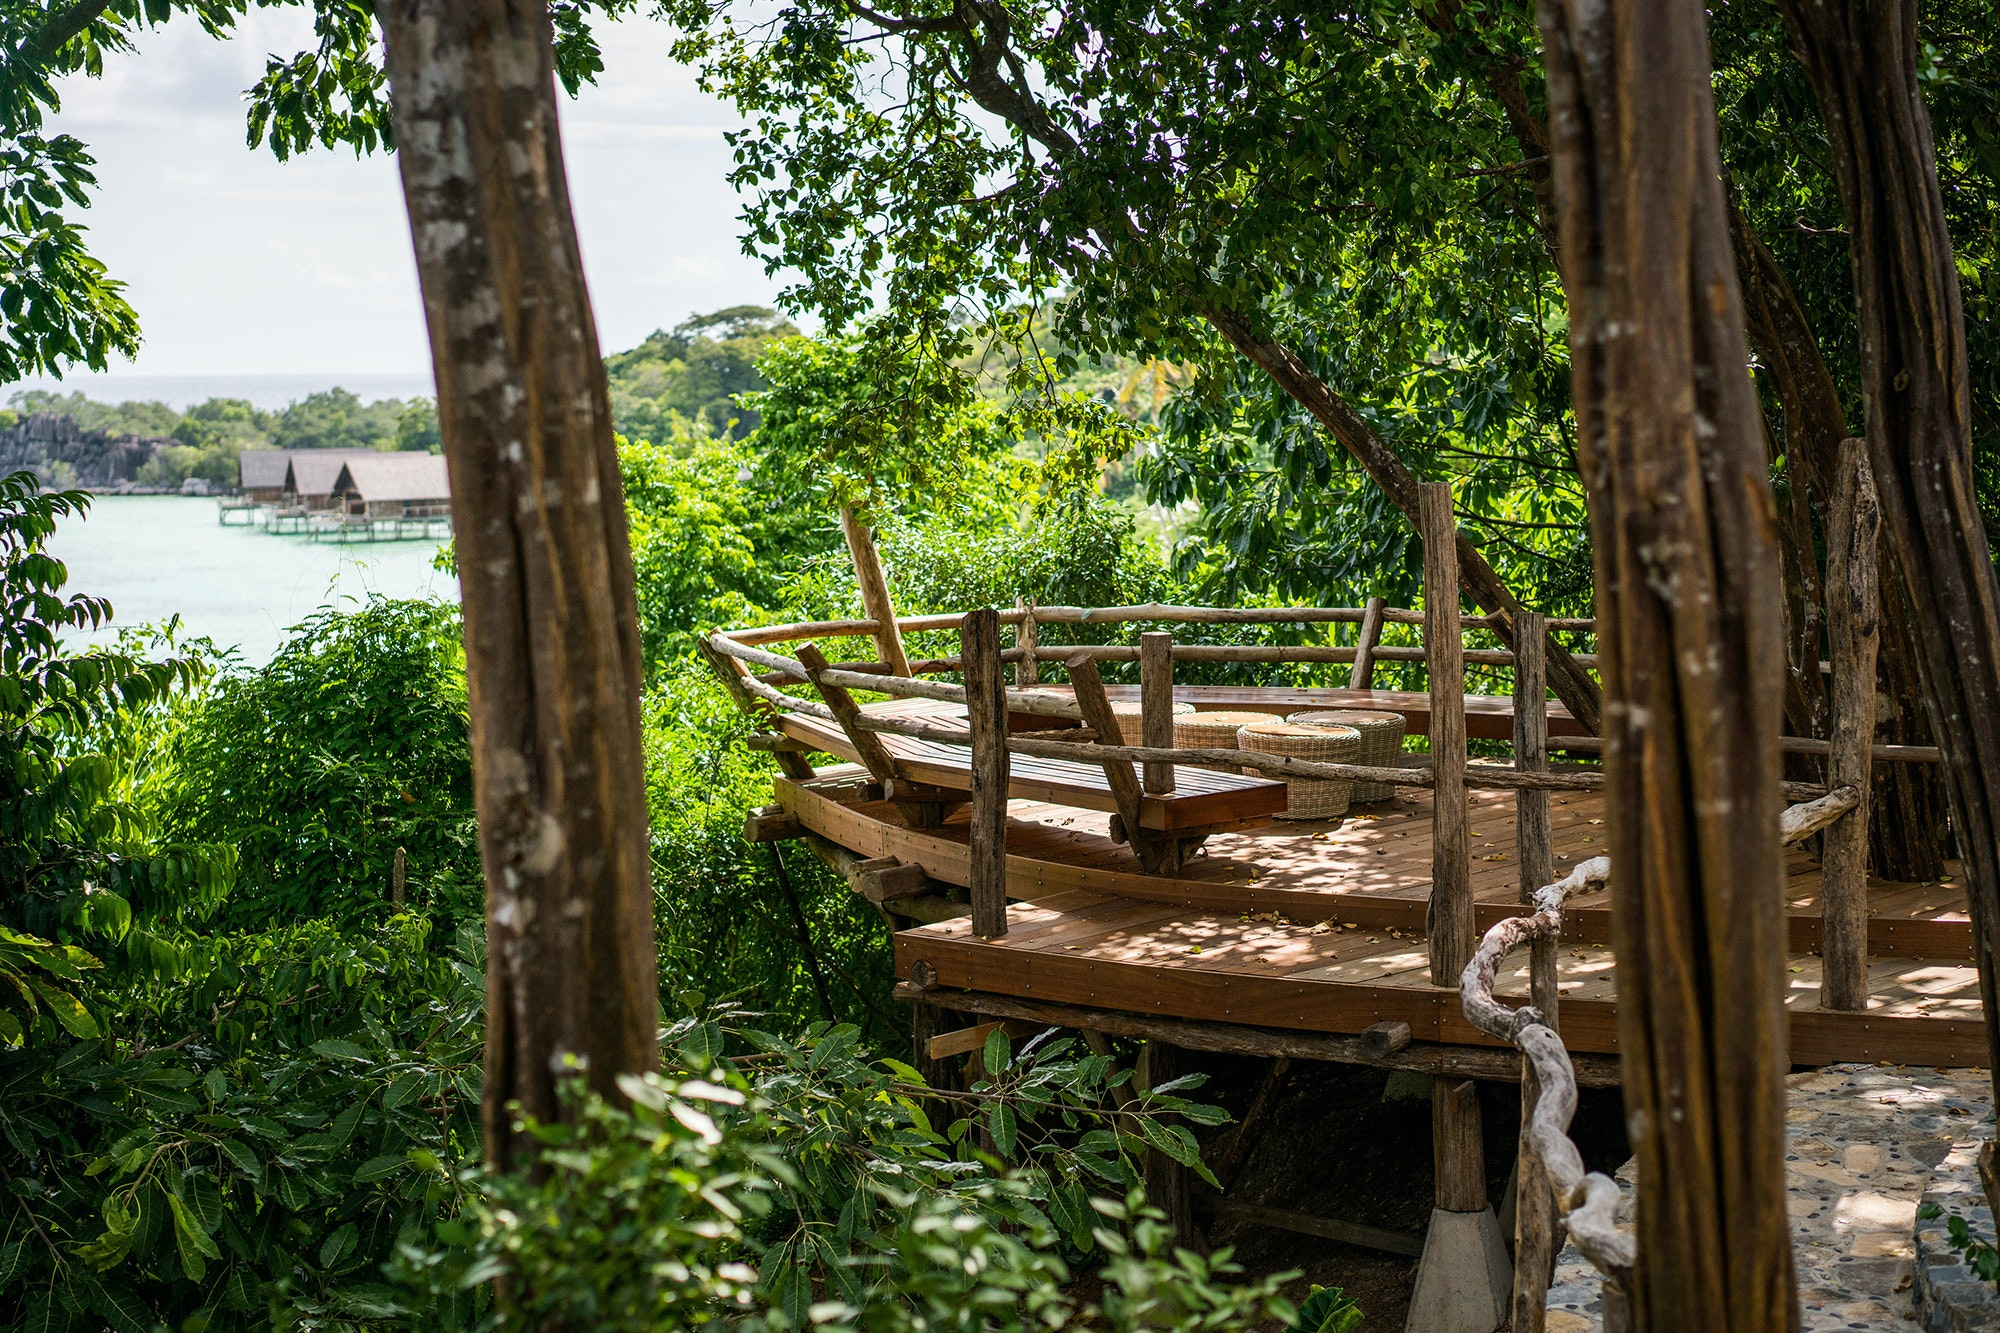 The structures of the resort exist in harmony with the surrounding environment.